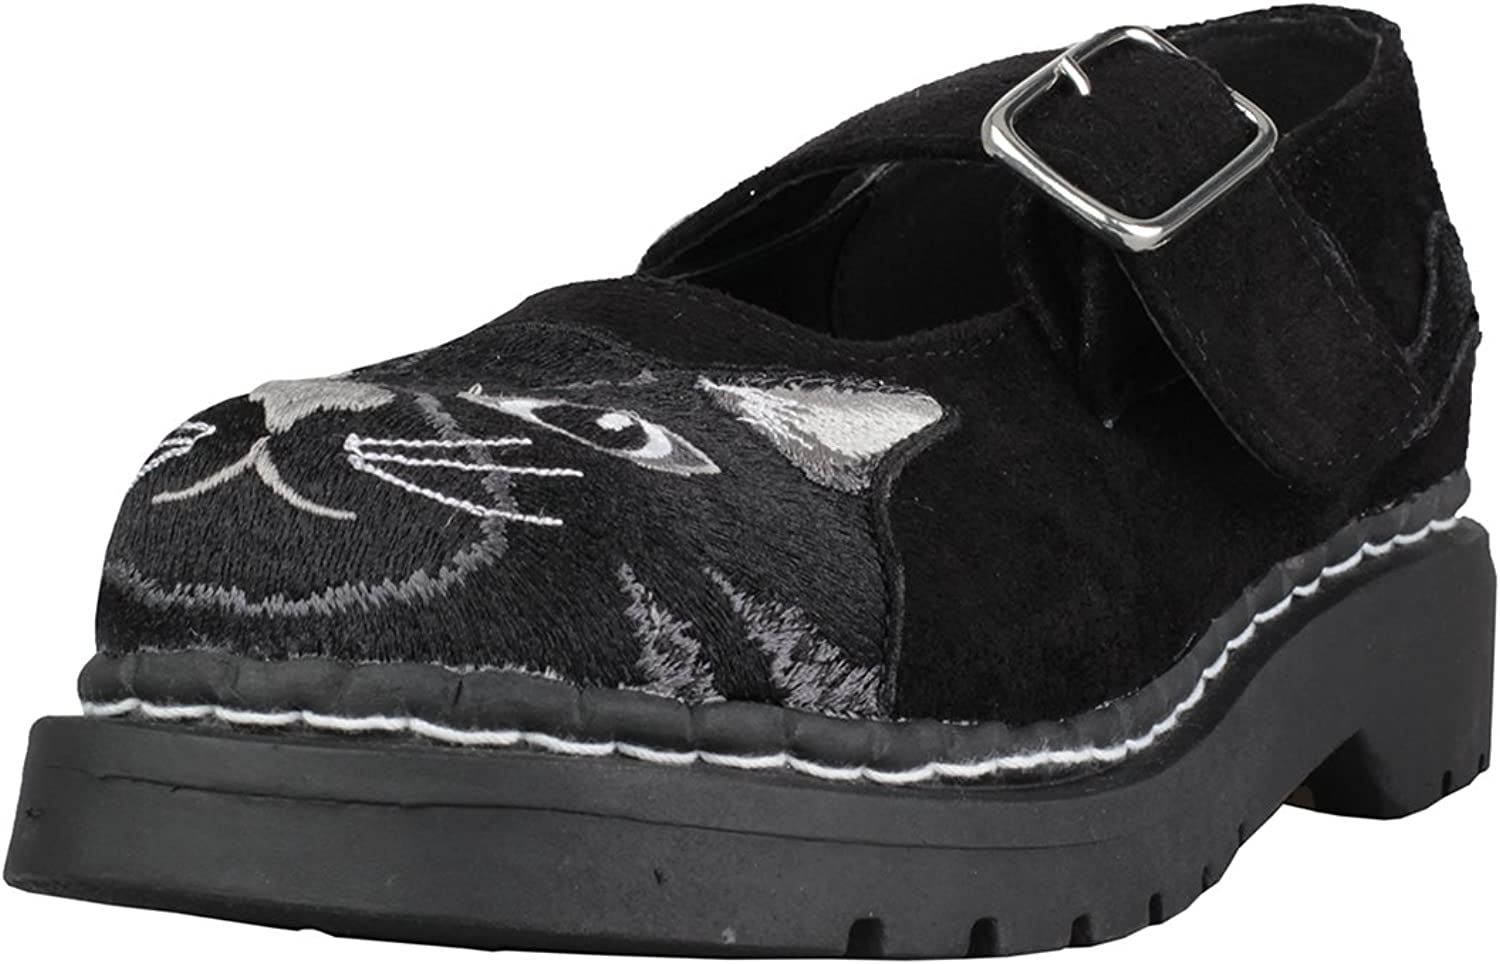 T.U.K. shoes T2261 Womens Mary Janes, Black Faux Suede Embroidered Kitty Mary Jane